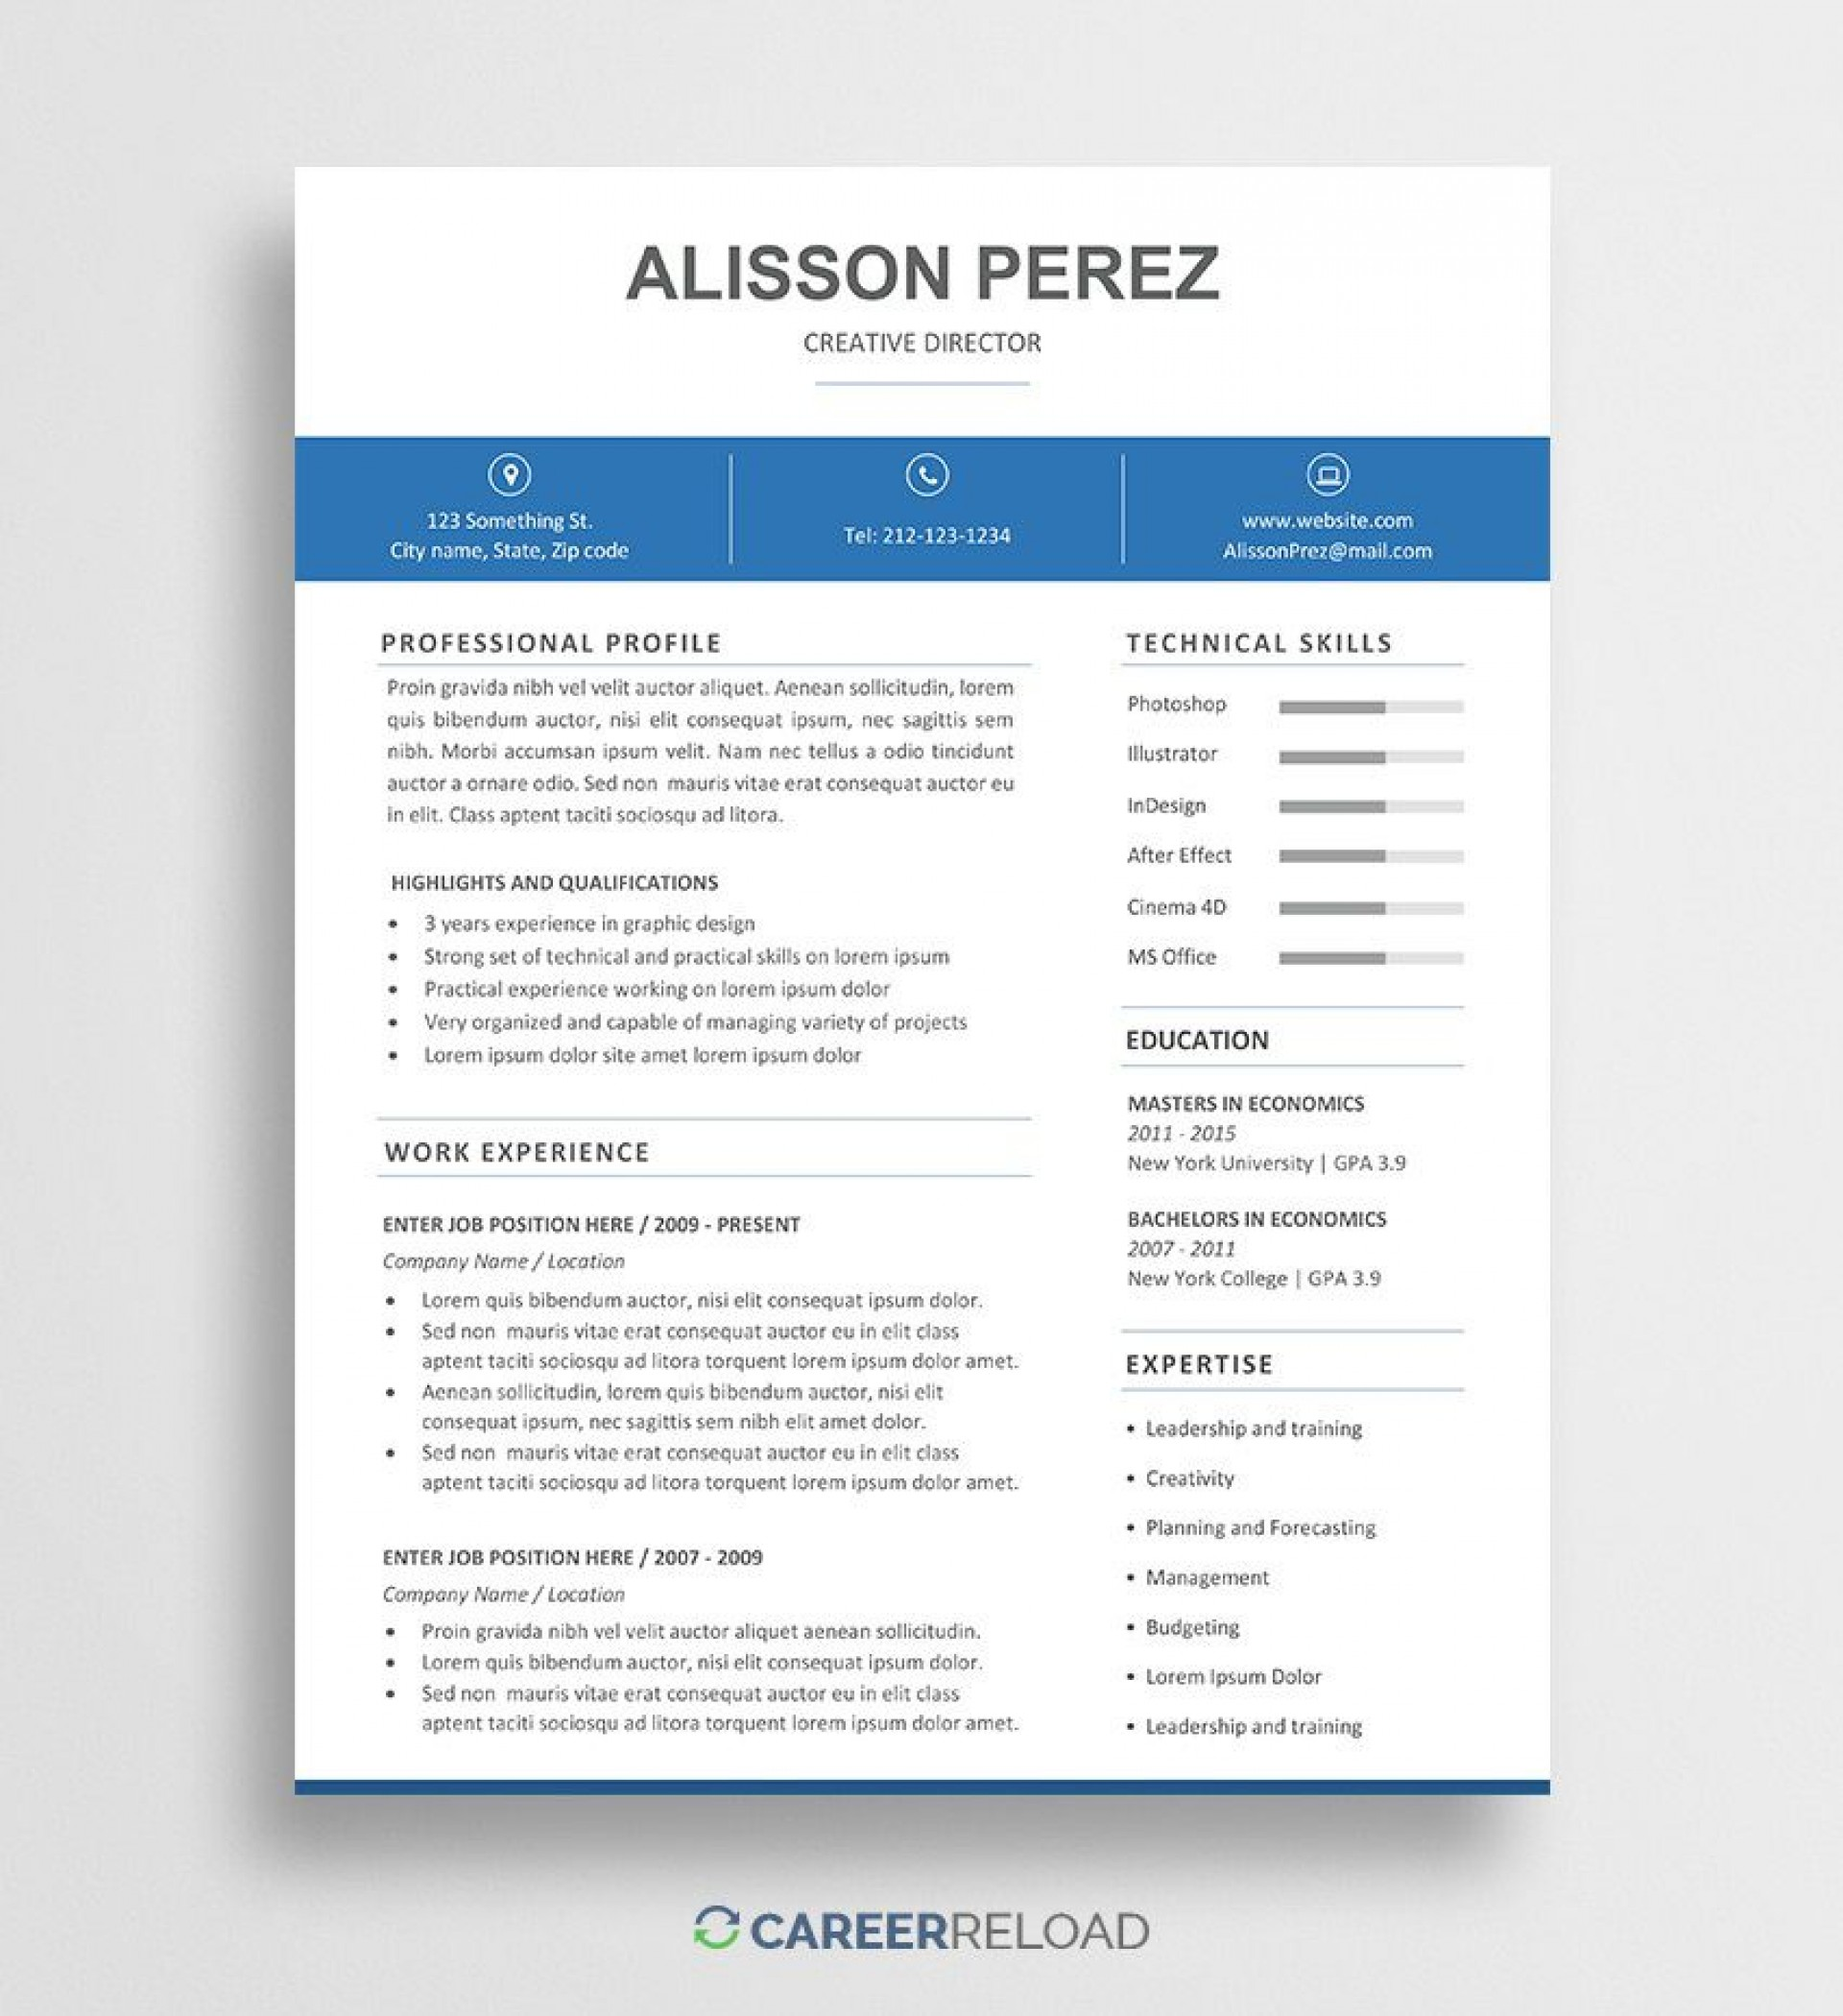 009 Awesome Word Resume Template Free Photo  Microsoft 2010 Download 2019 Modern1920